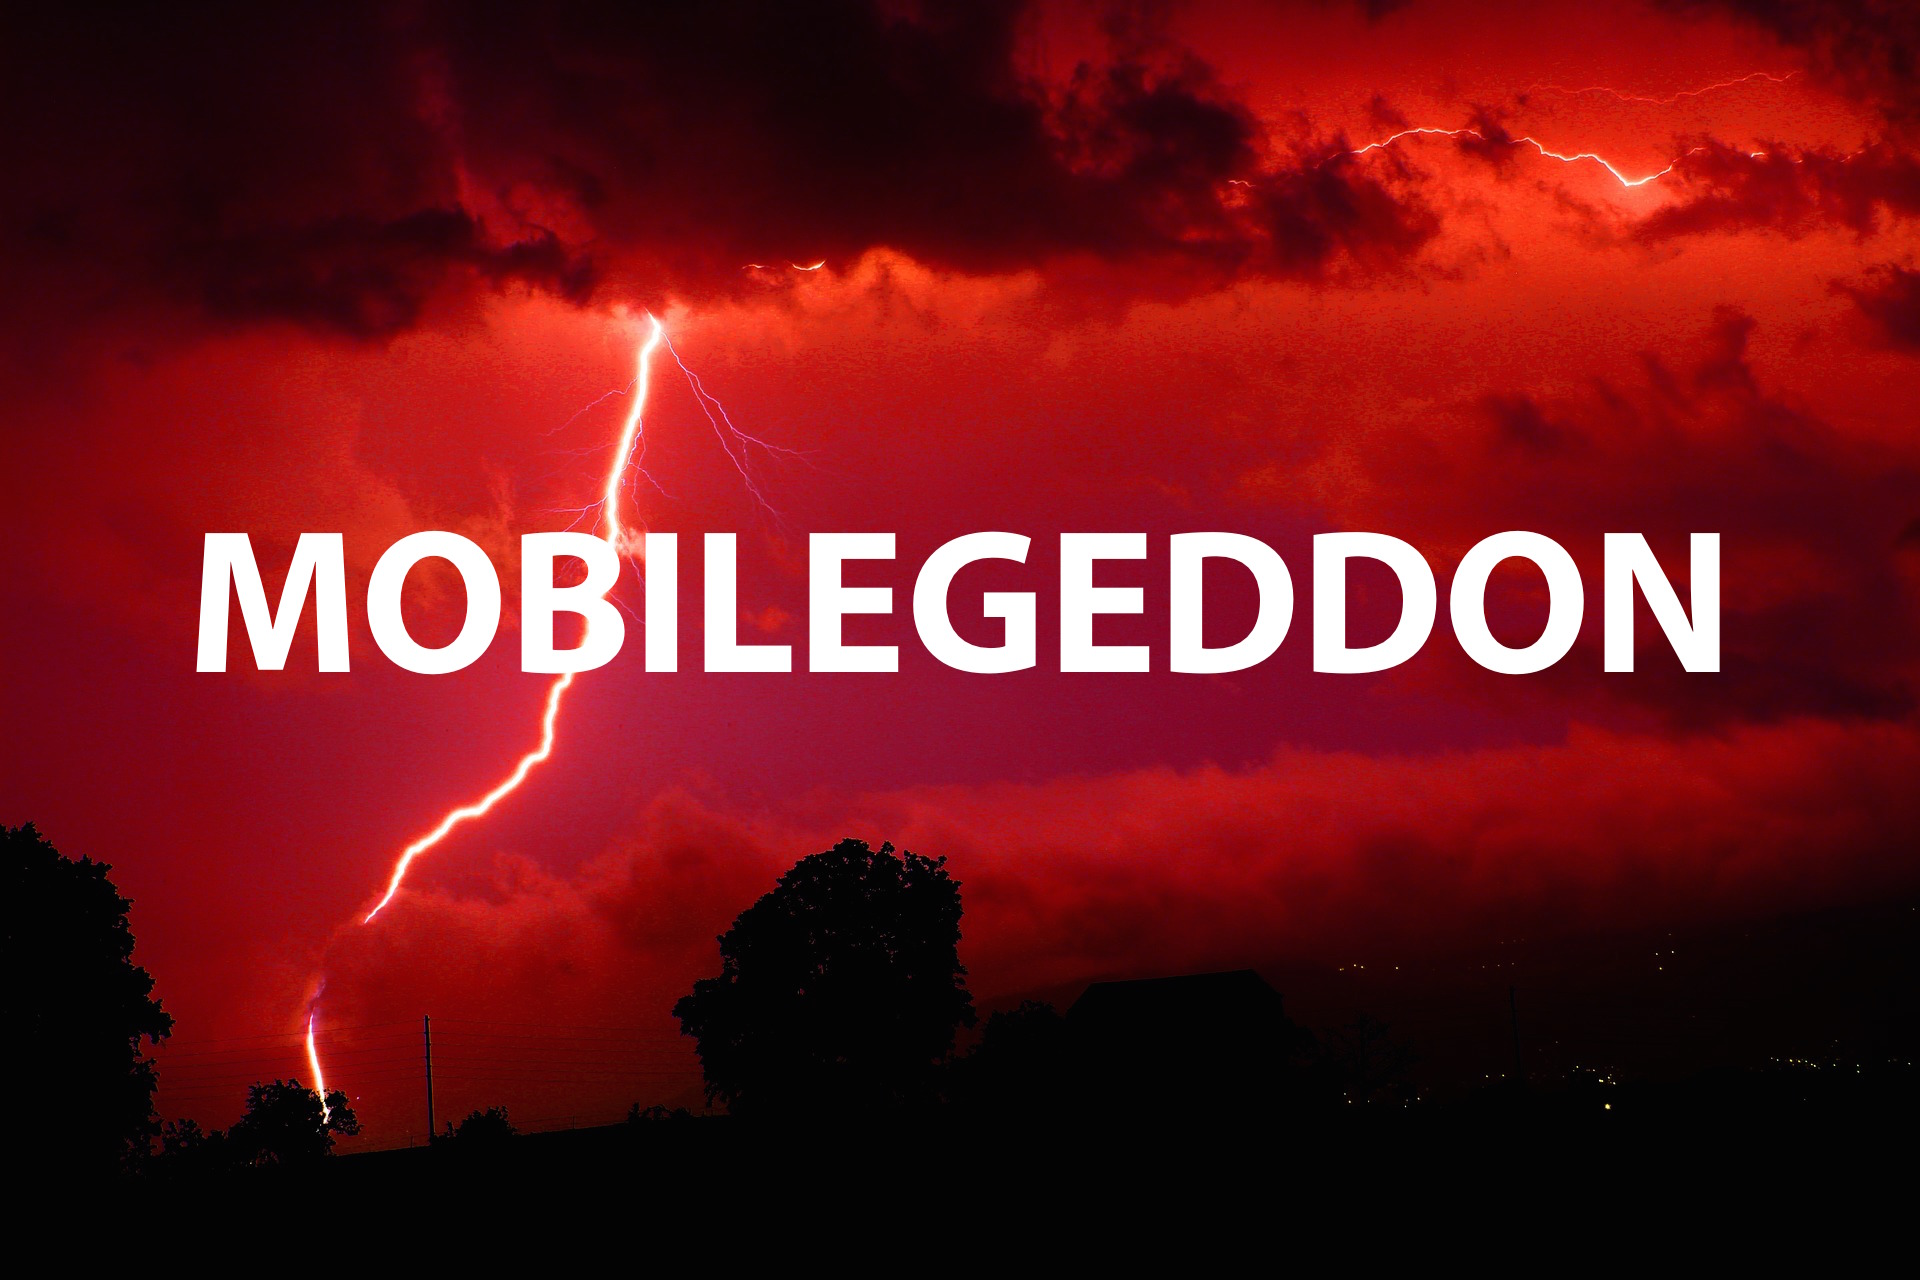 Flash: The impacts of Mobilegeddon